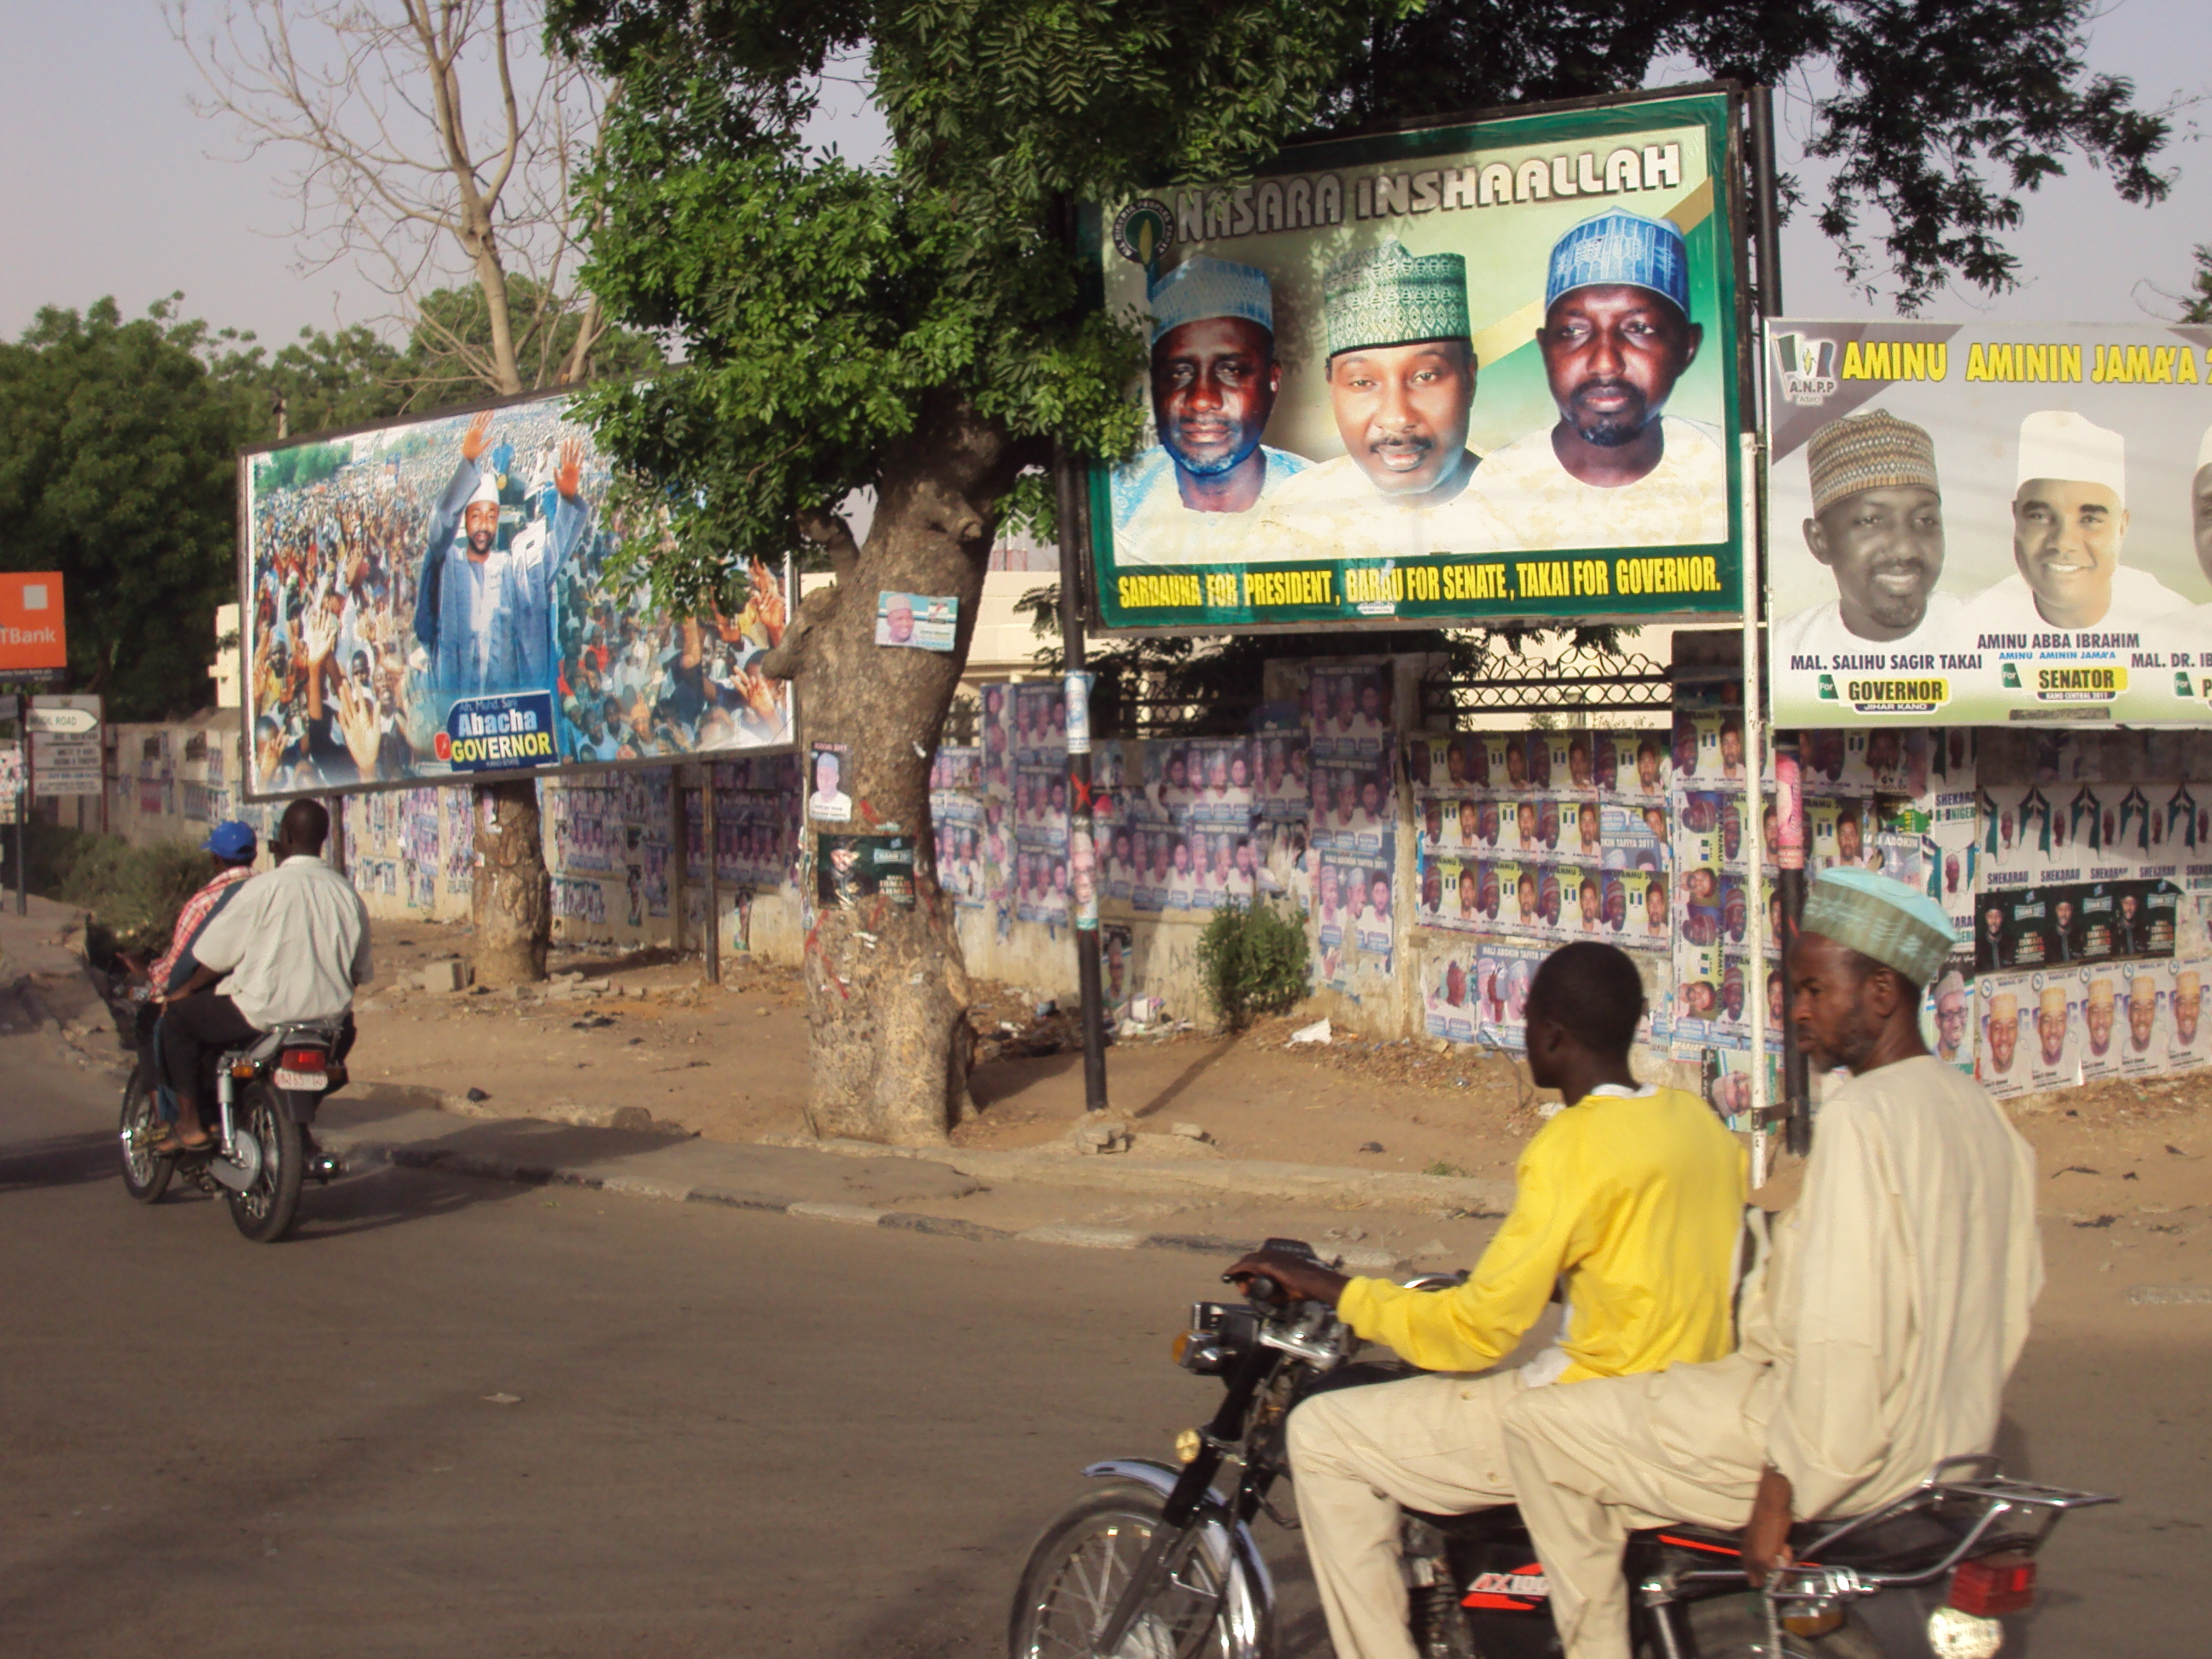 Campaign billboards in Kano. Nigerians are set to vote for a president, members of parliament and state governors in April 2011